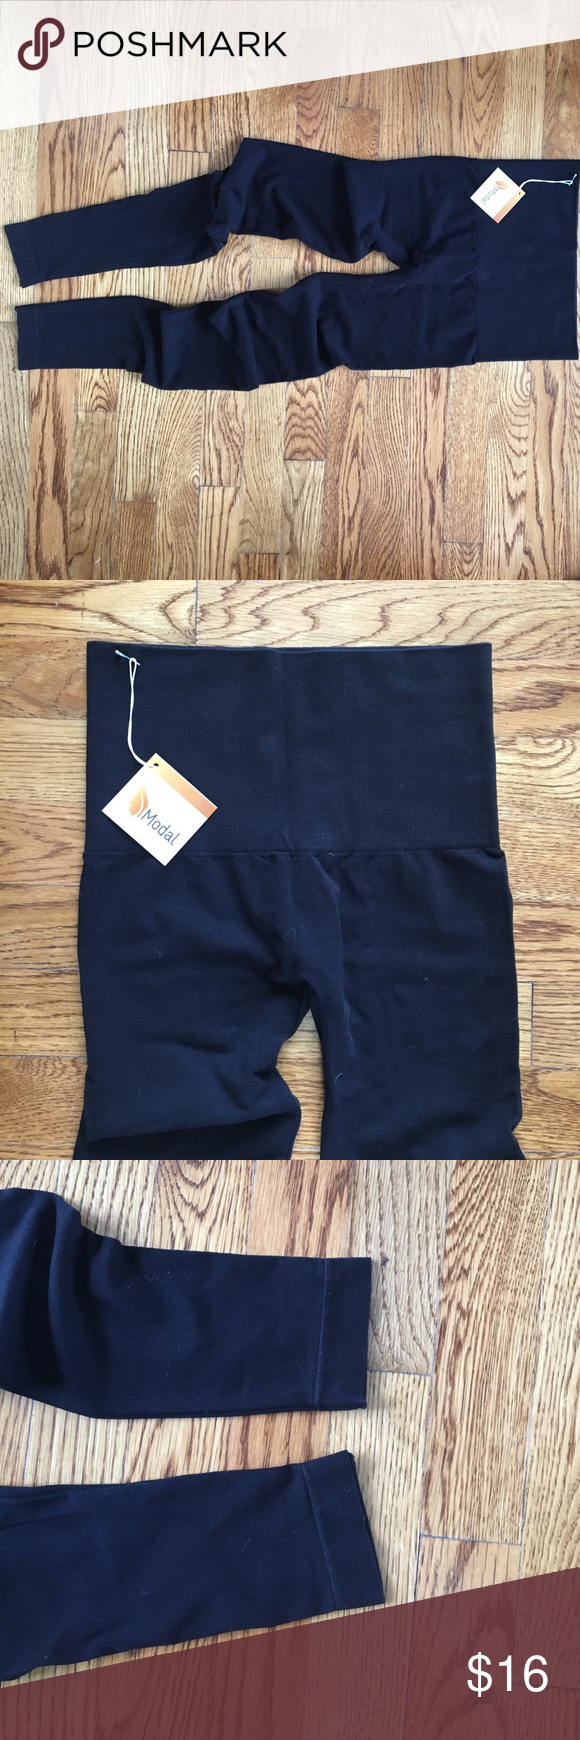 Boutique Quality Modal Leggings Brand New high quality leggings from Jessa Kae boutique. Size Small. Very soft-modal is the BEST material for leggings! Nice wide waist band for tummy control. These are high quality and could even be used for workouts. Emma's Closet Pants Leggings